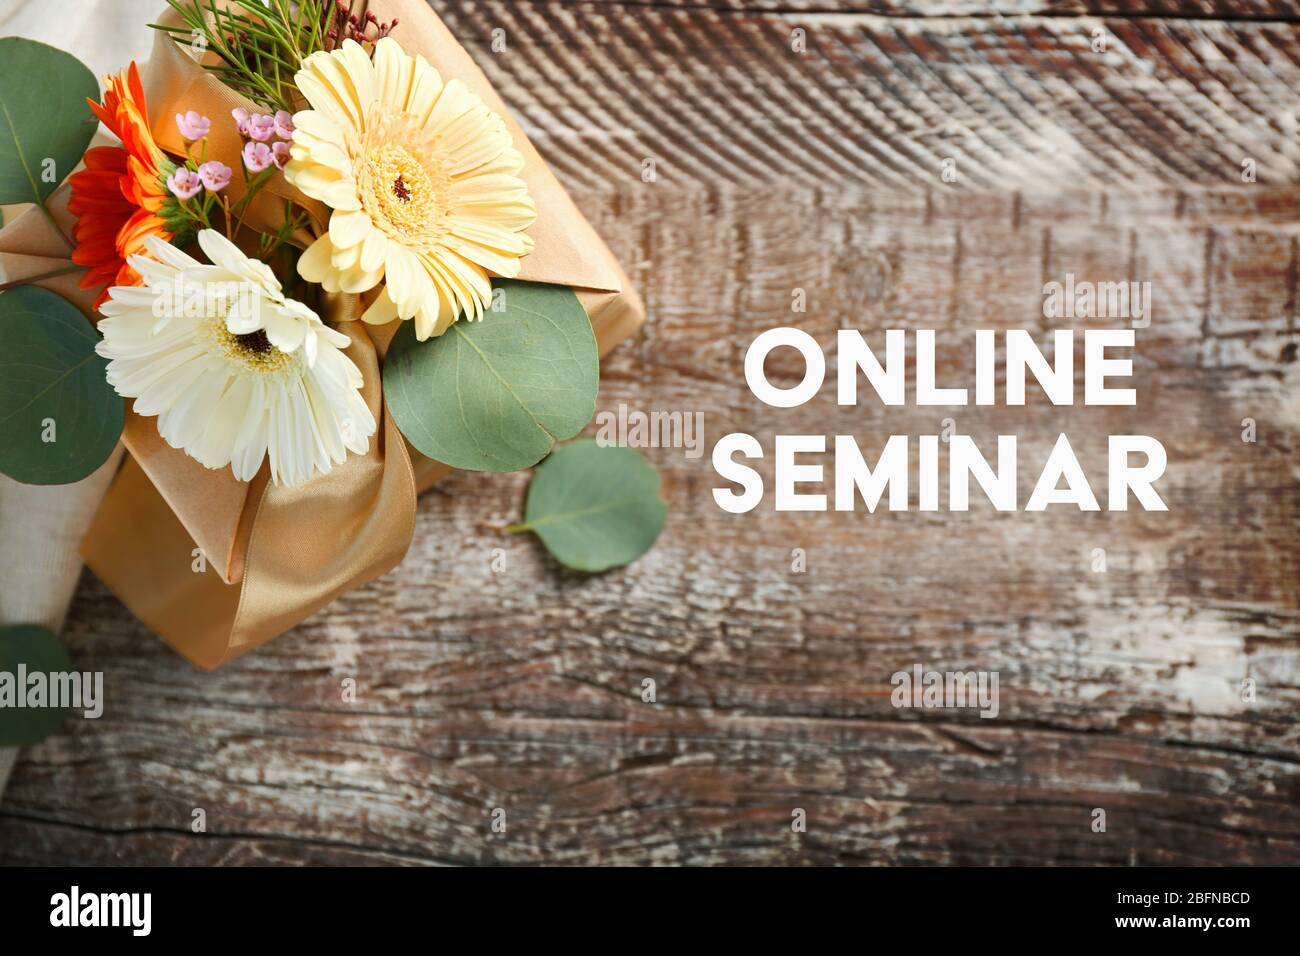 Gift Box Decorated With Flowers And Text Online Seminar On Wooden Background Florist And Floral Design Tutorial Concept Stock Photo Alamy